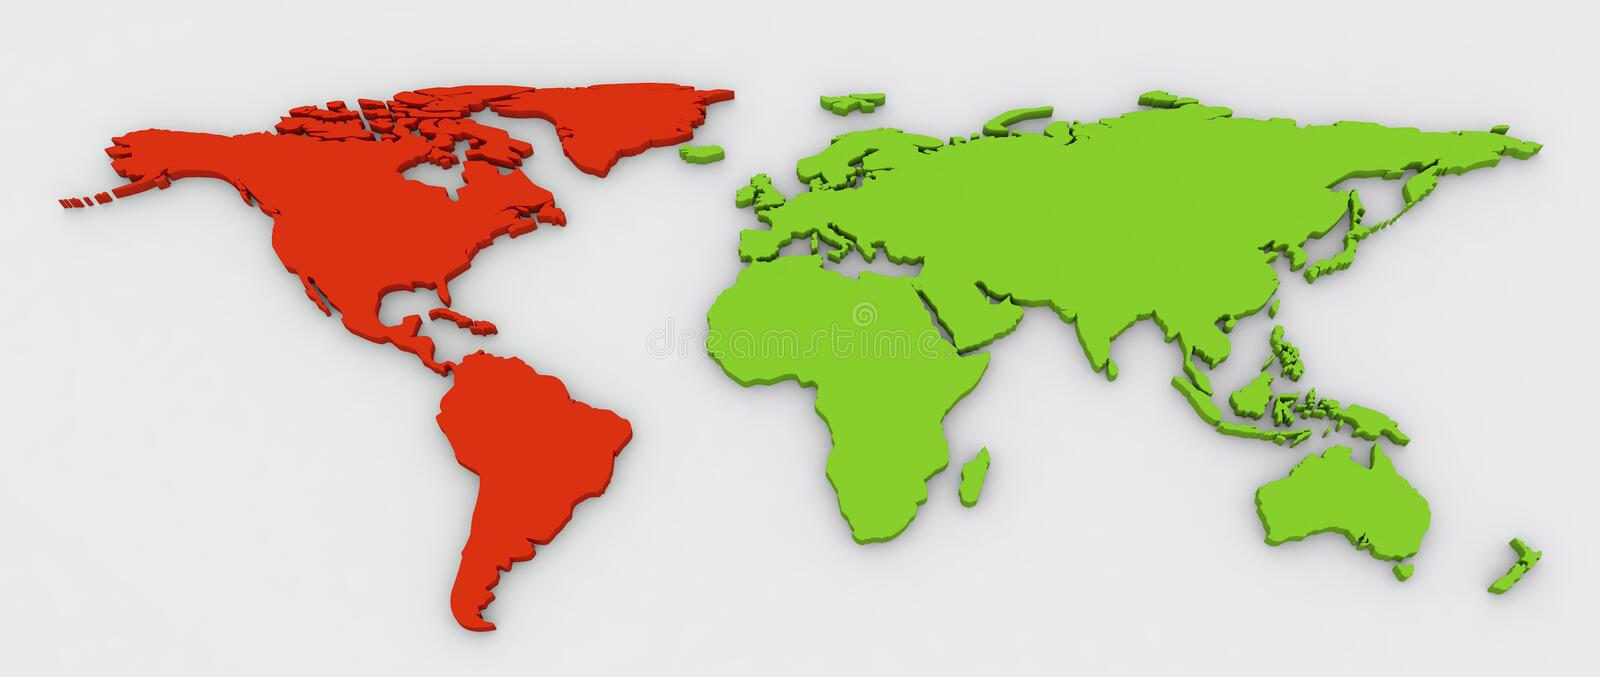 Red american continent in green world map stock illustration download red american continent in green world map stock illustration illustration of green atlas gumiabroncs Choice Image